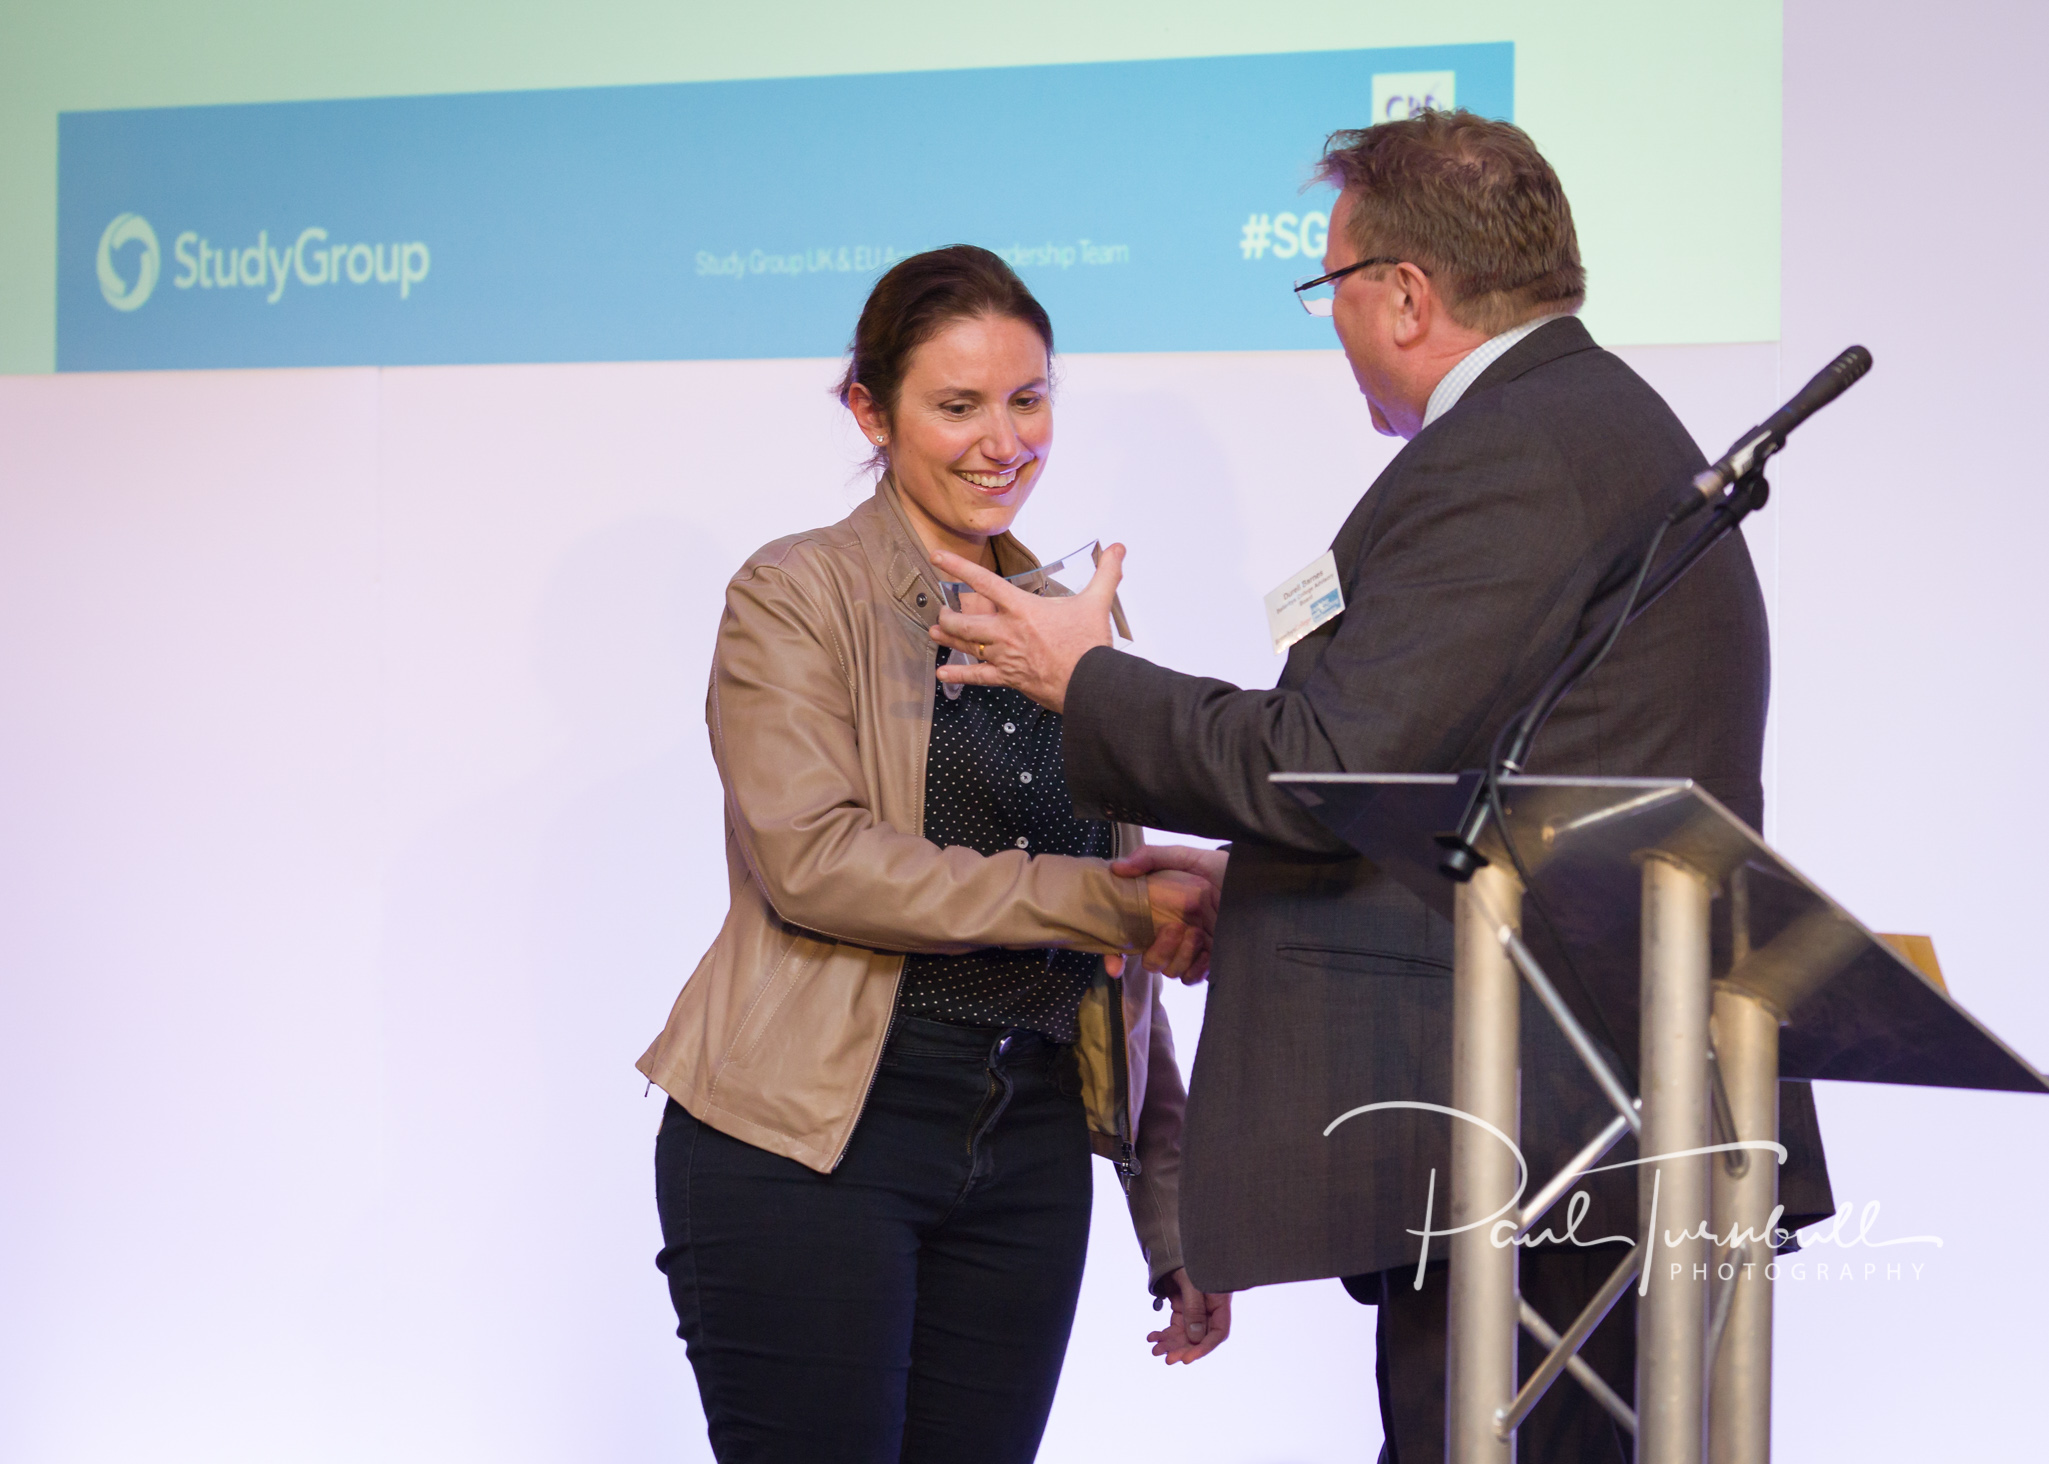 conference-event-photographer-queens-hotel-leeds-yorkshire-028.jpg